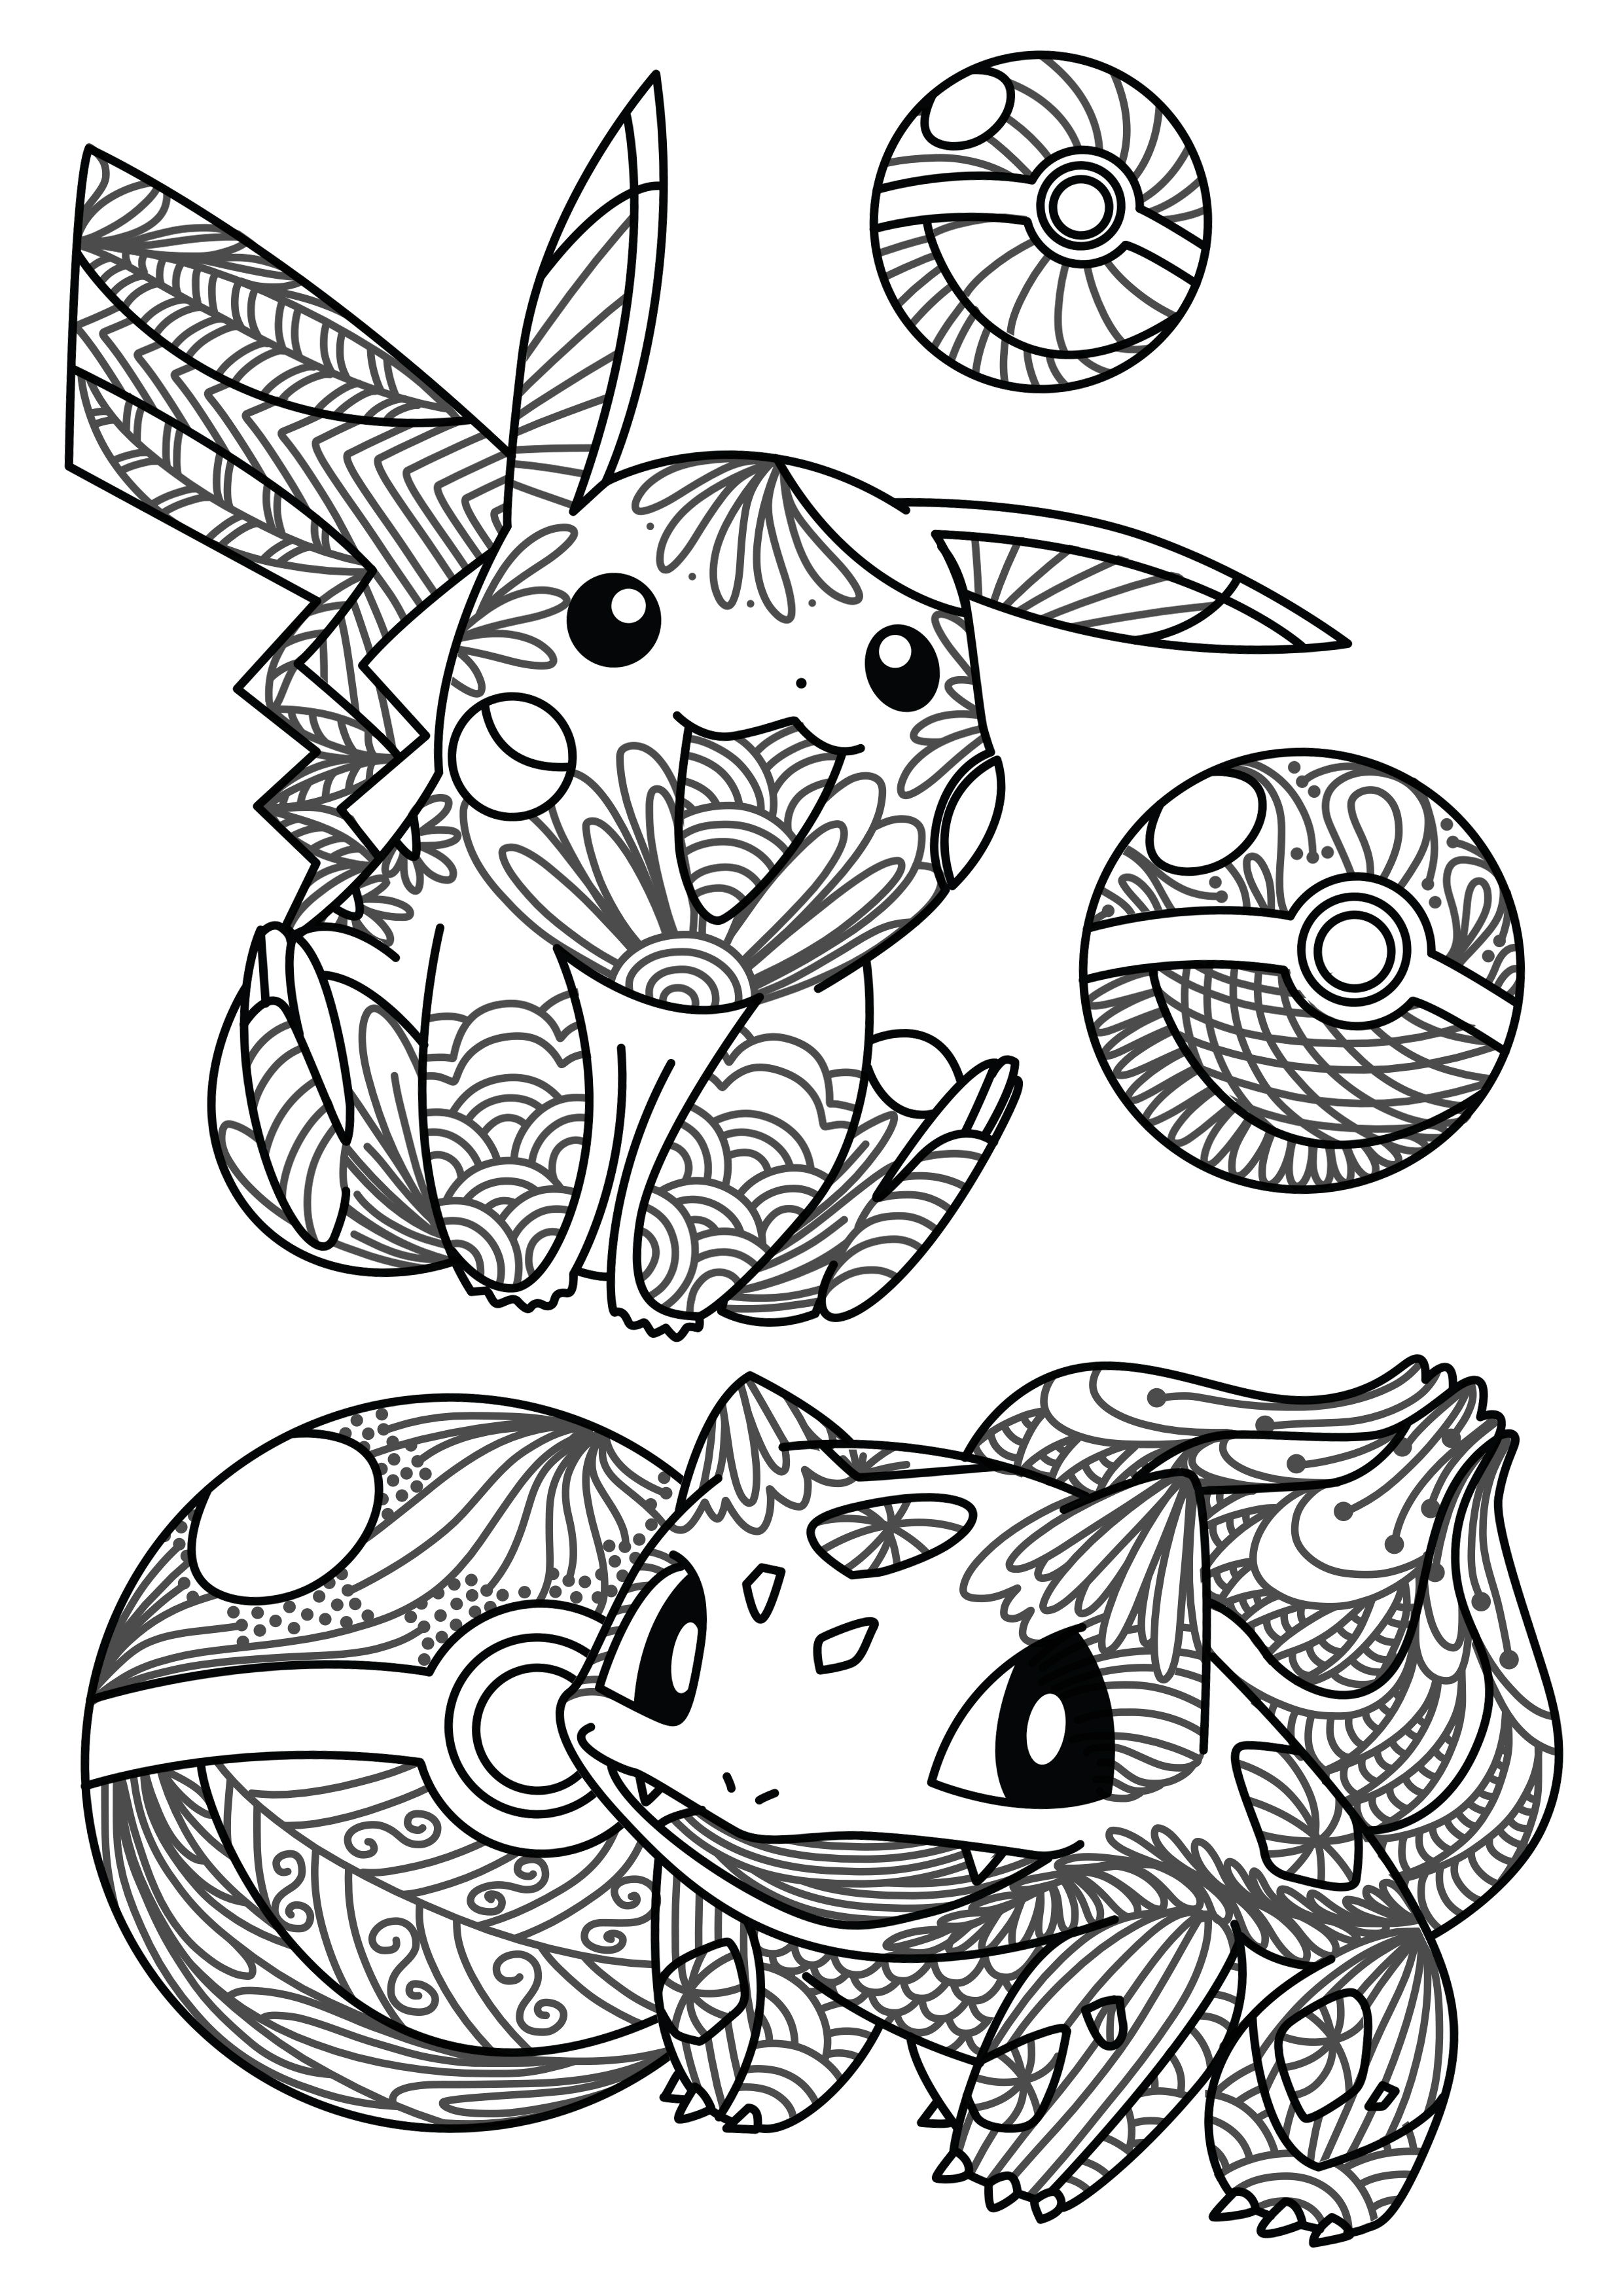 Christmas Coloring Ideas With Modern Pokemon Pages Decoration Newyork Rp